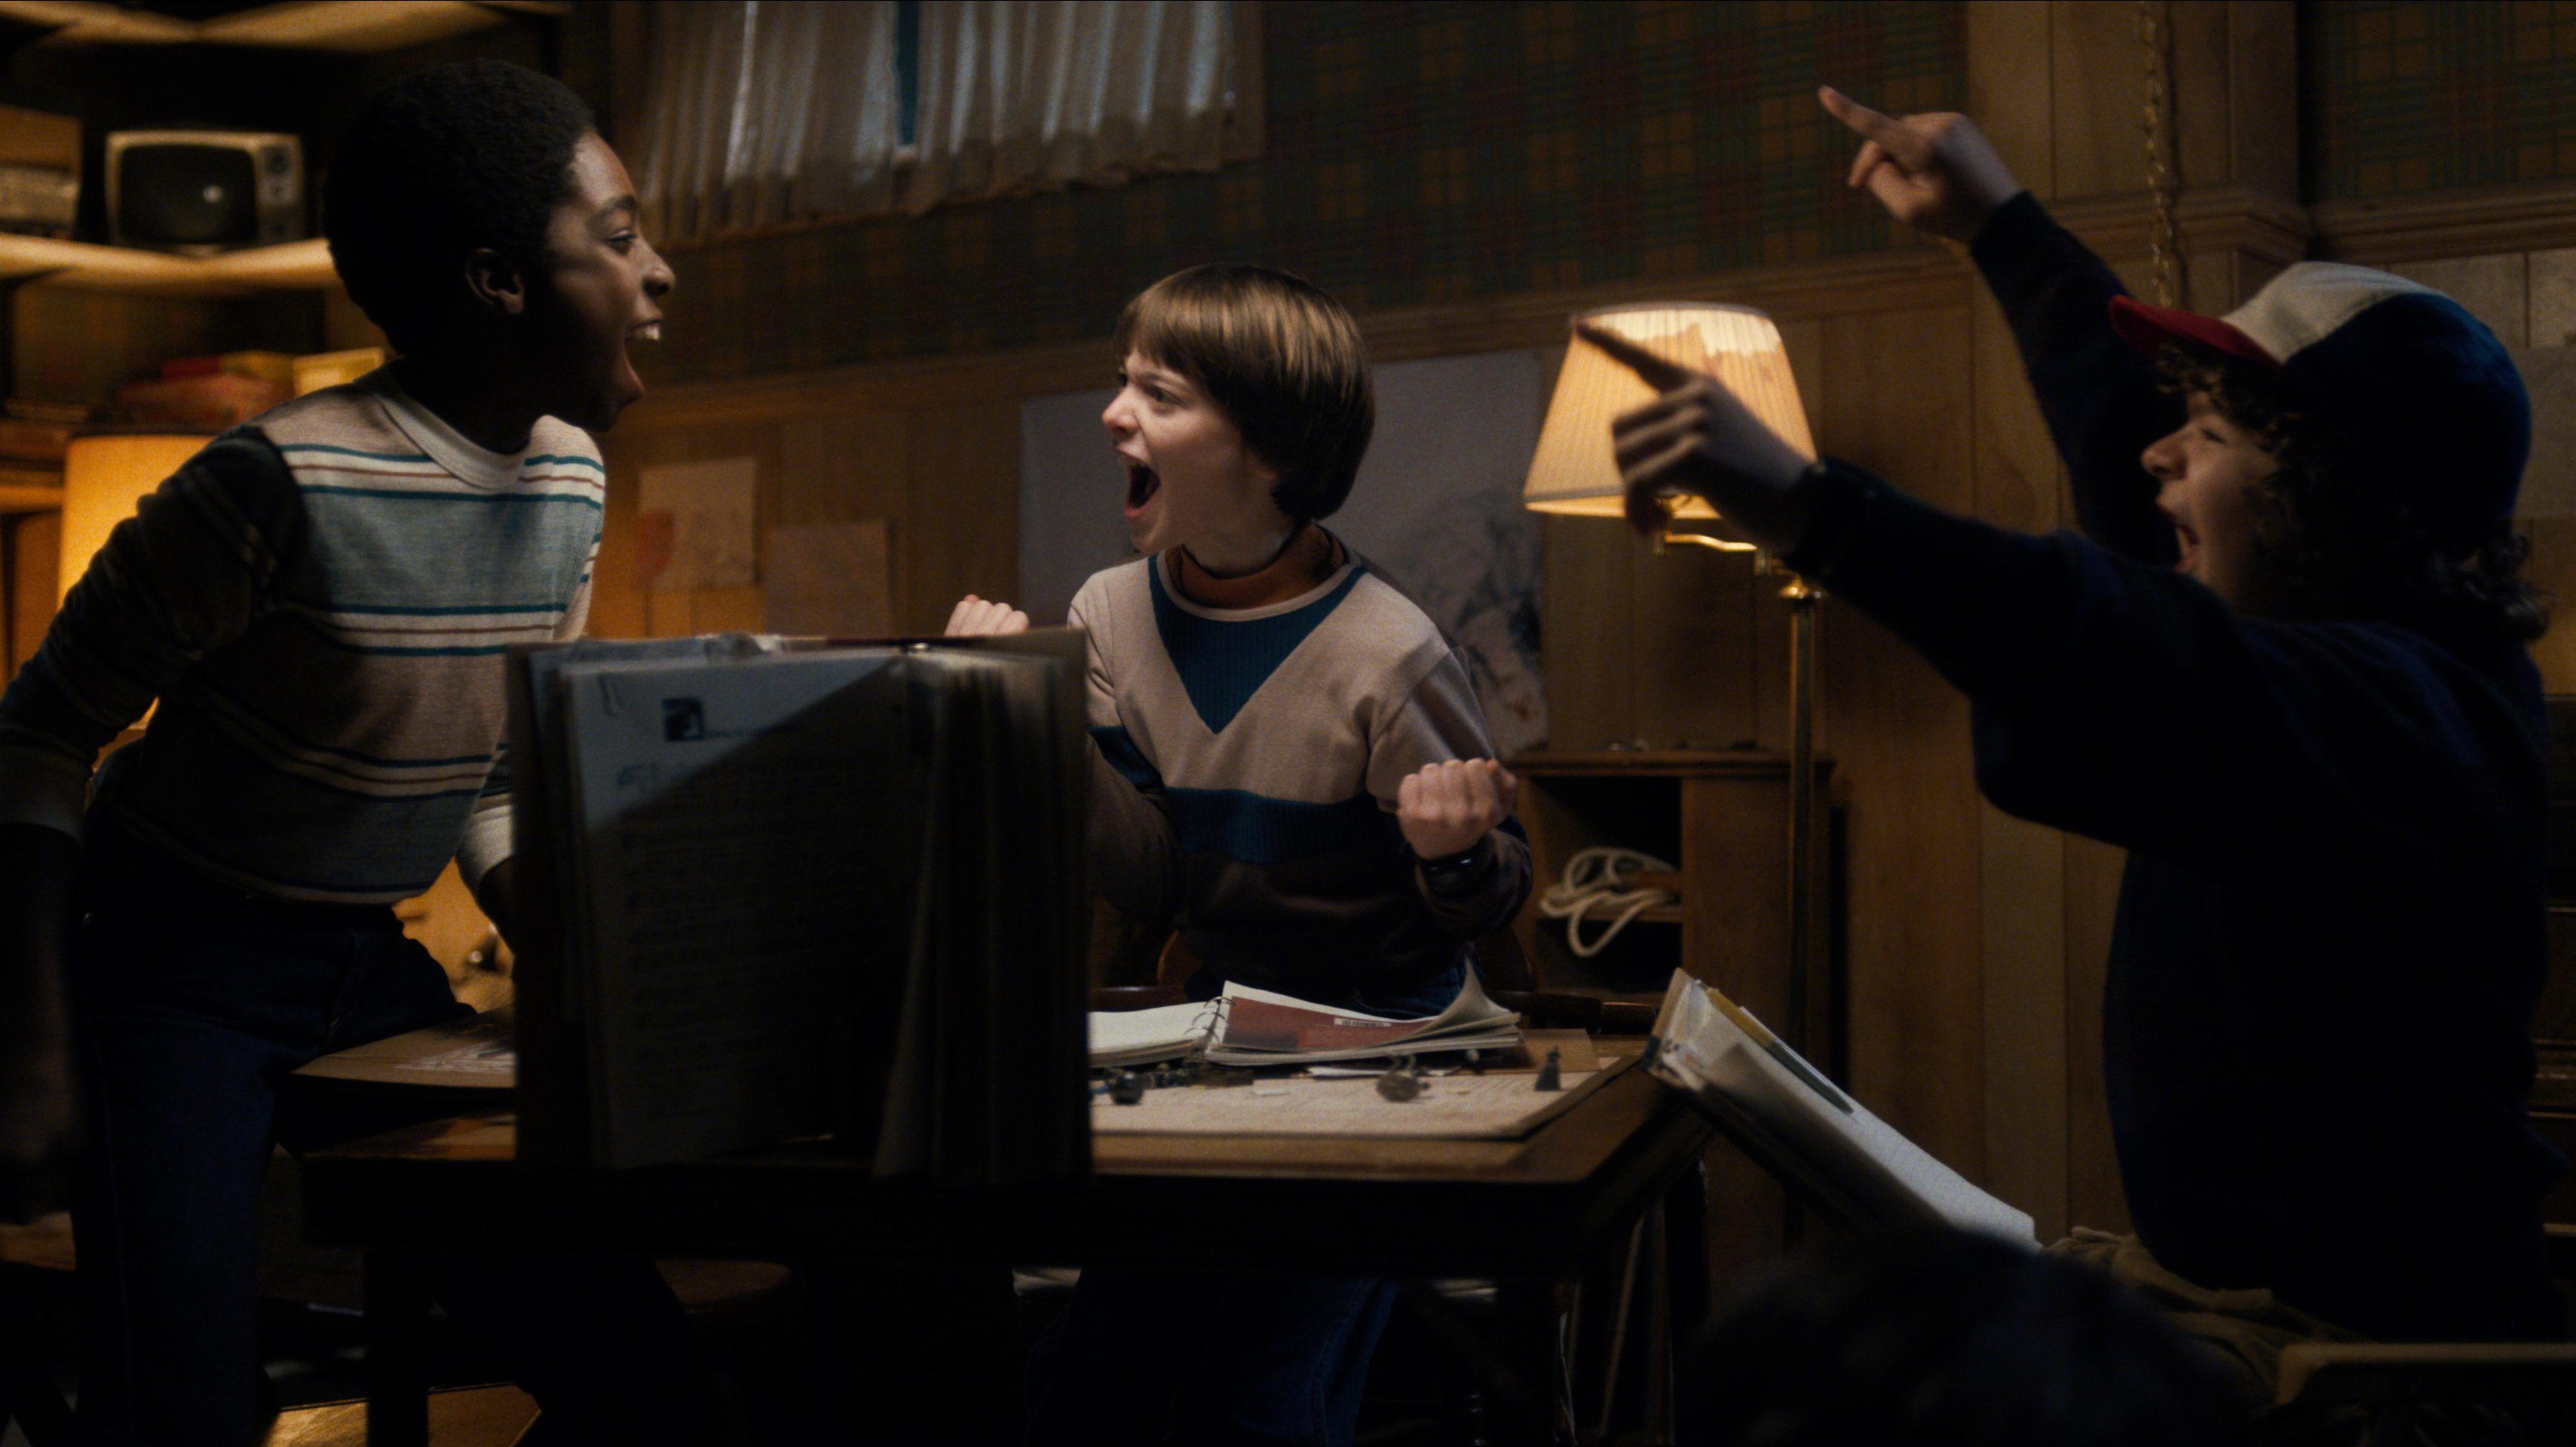 Duffer Brothers Respond To 'Stranger Things' Plagiarism Charge: